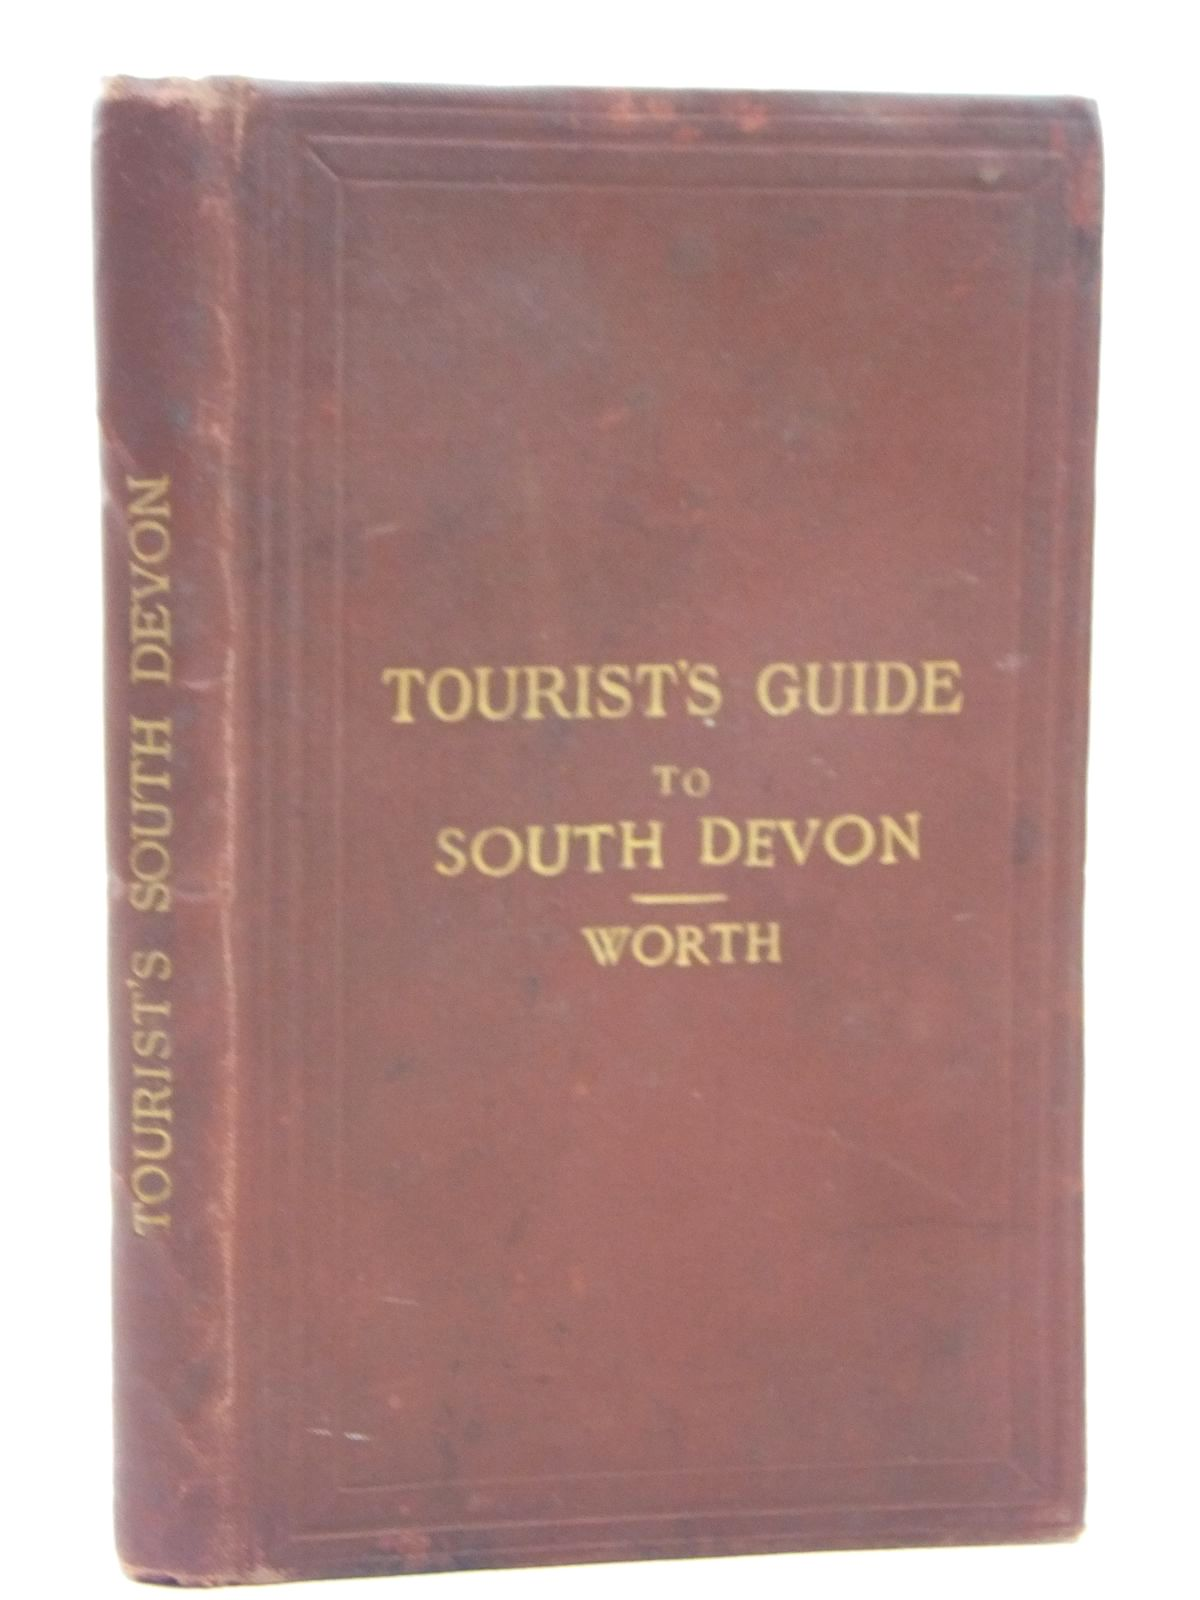 Photo of TOURIST'S GUIDE TO SOUTH DEVON written by Worth, R.N. published by Edward Stanford (STOCK CODE: 1609468)  for sale by Stella & Rose's Books